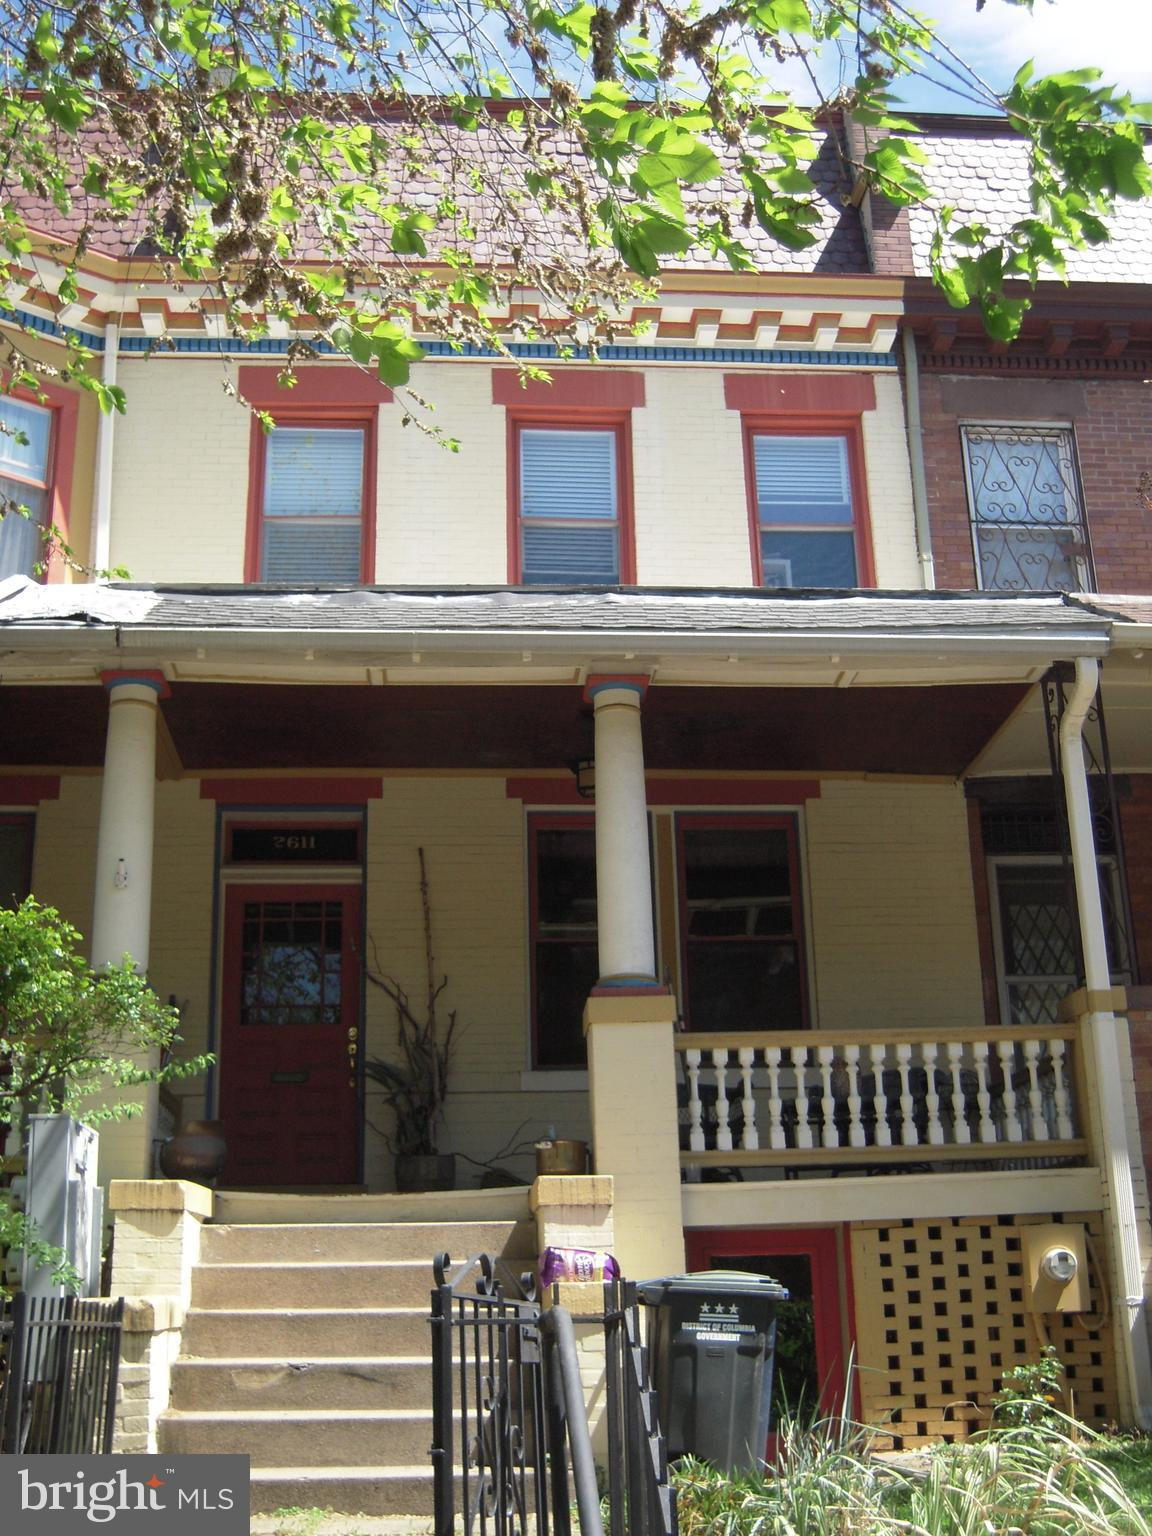 ATTN INVESTORS/DEVELOPERS ~ extremely rare opportunity to acquire 3 adjoining row homes in south Col